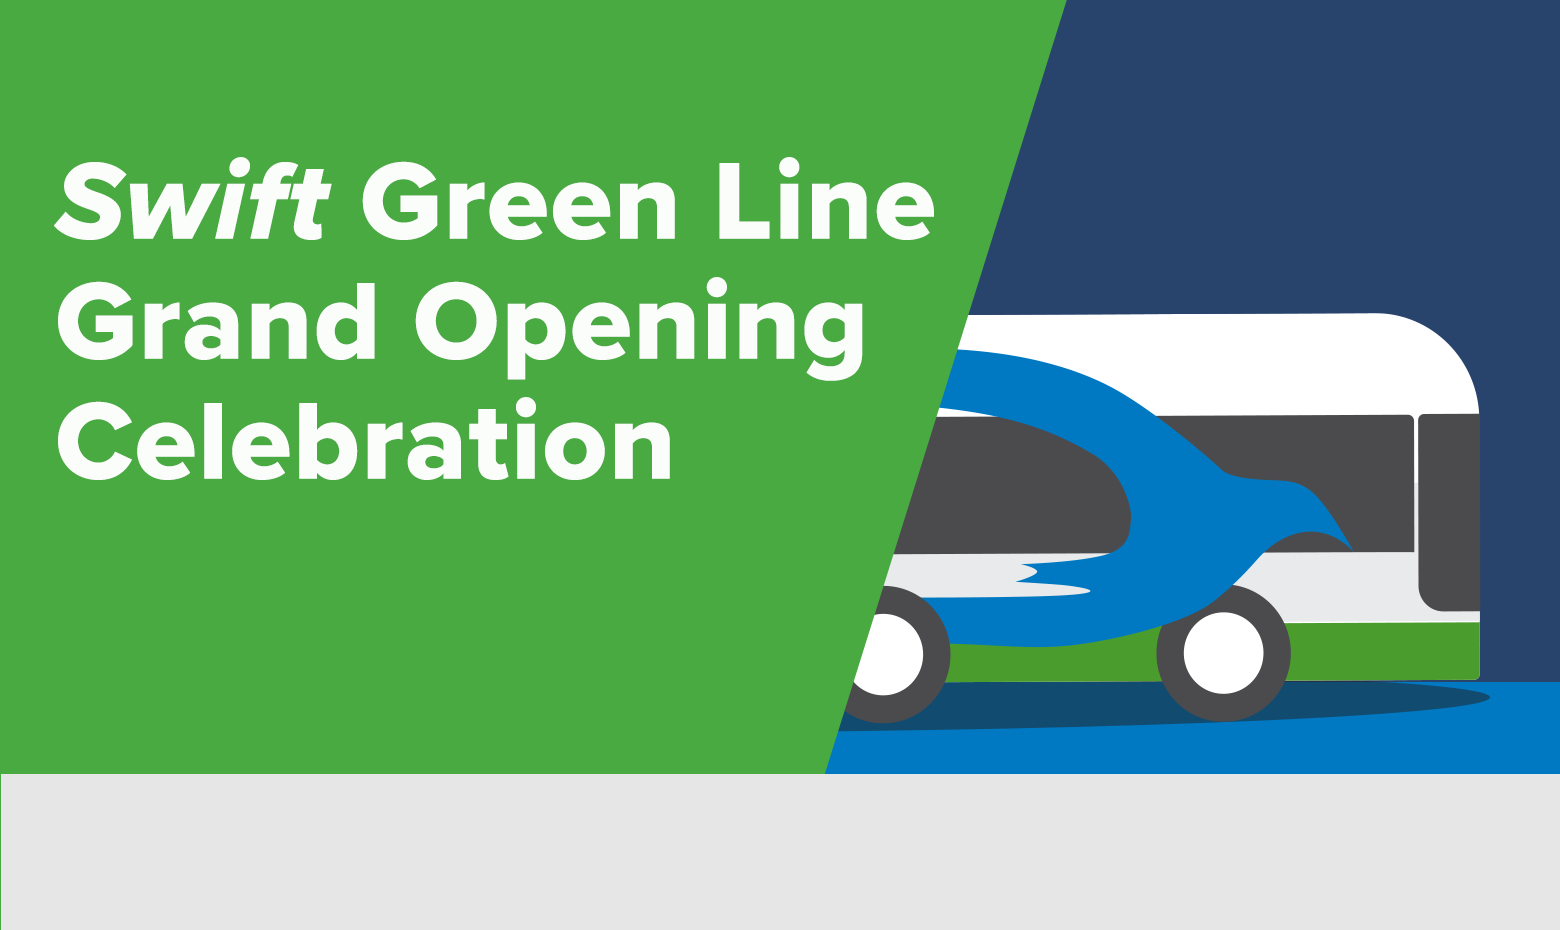 Swift Green Line Grand Opening March 24